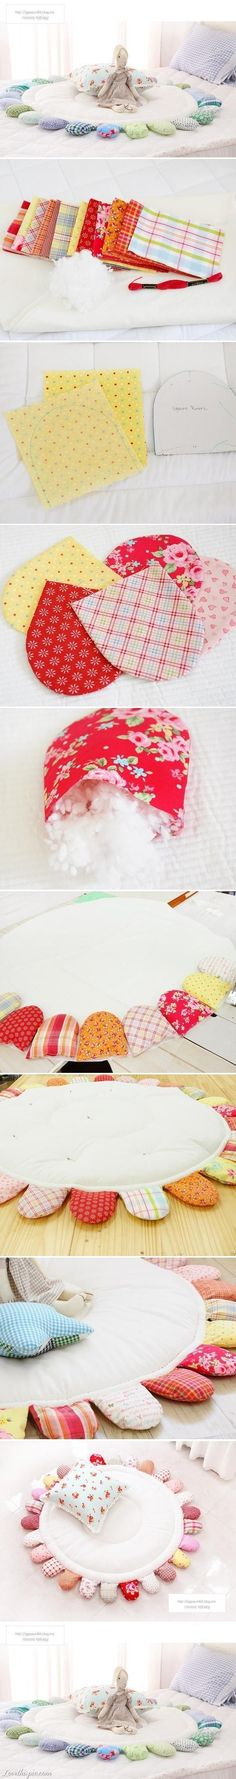 diy childrens rug diy craft crafts easy diy cute diy for the home useful diy